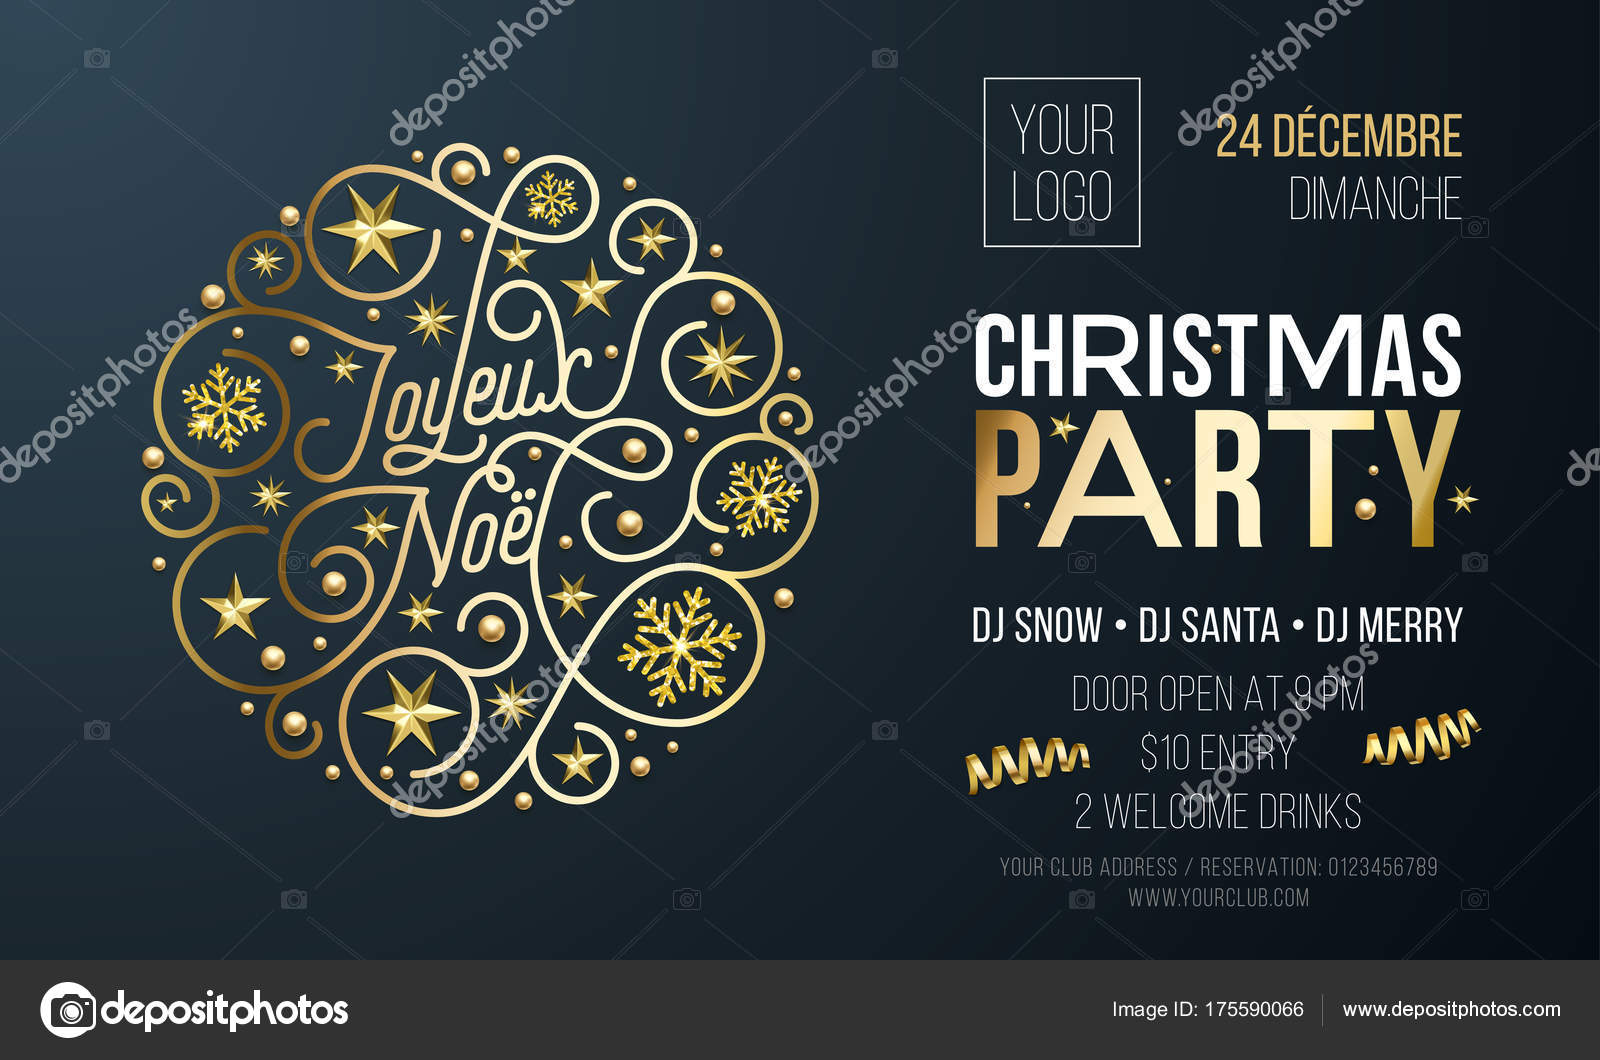 Christmas party invitation for french joyeux noel holiday christmas party invitation for french joyeux noel holiday celebration design template vector new year or stopboris Gallery